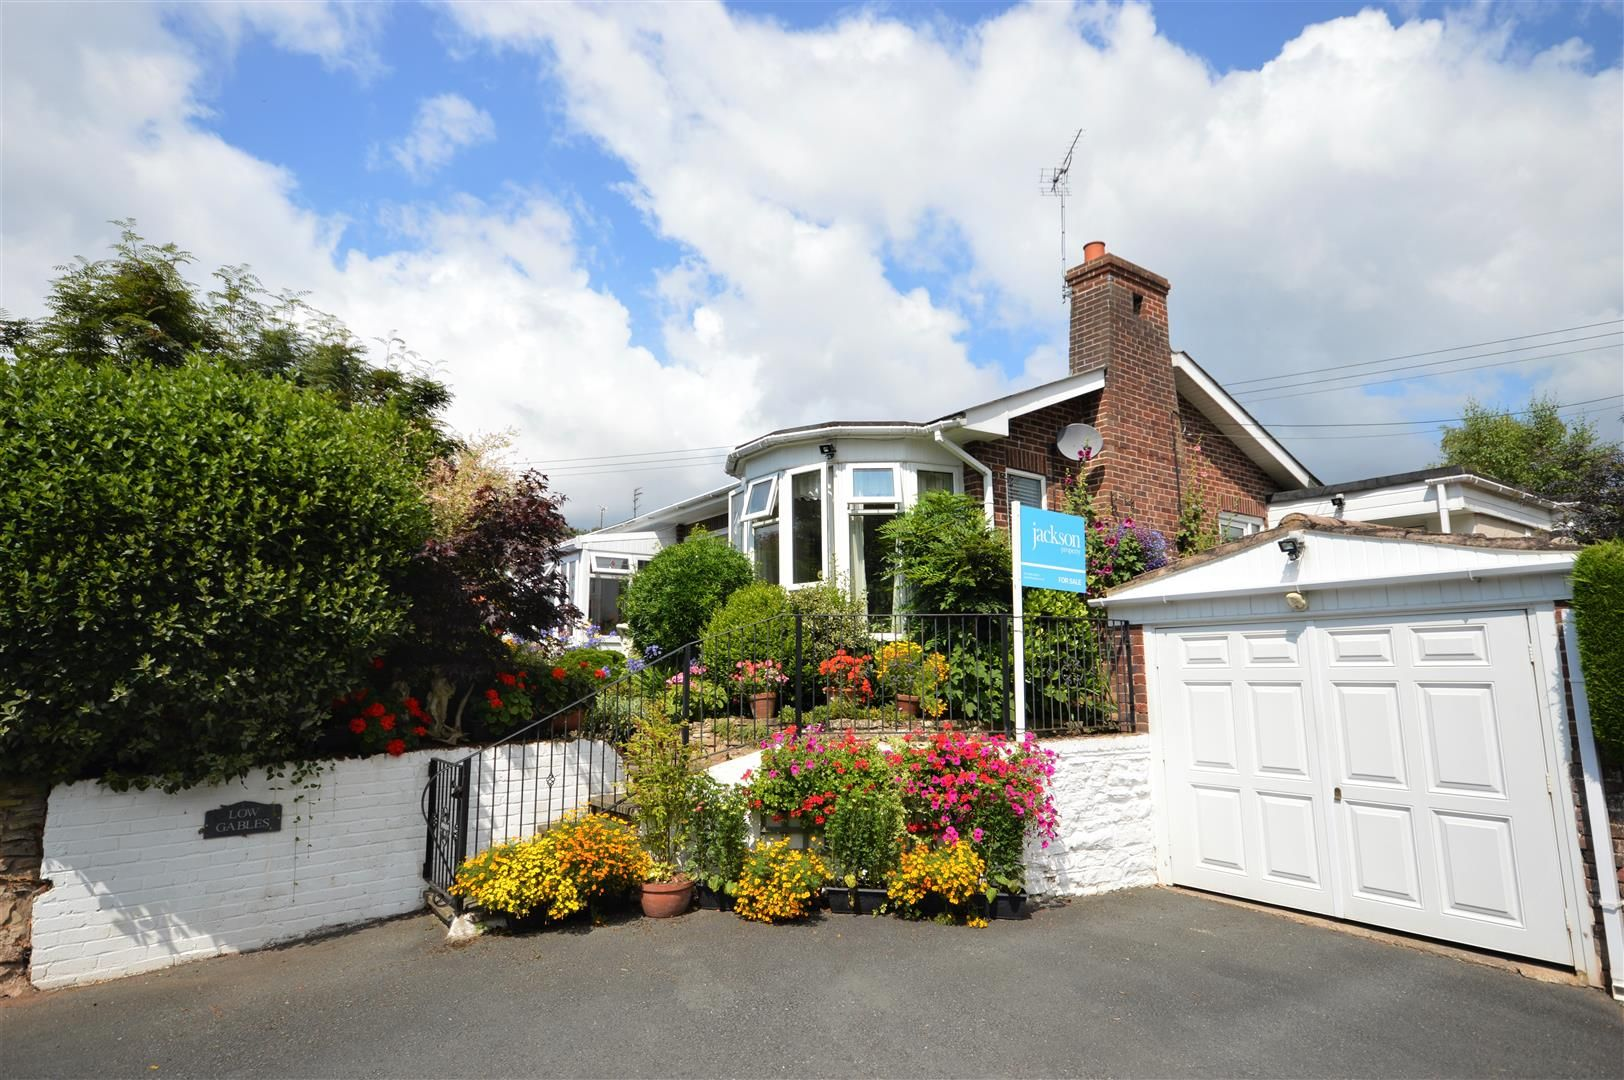 3 bed detached-bungalow for sale in Leominster, HR6